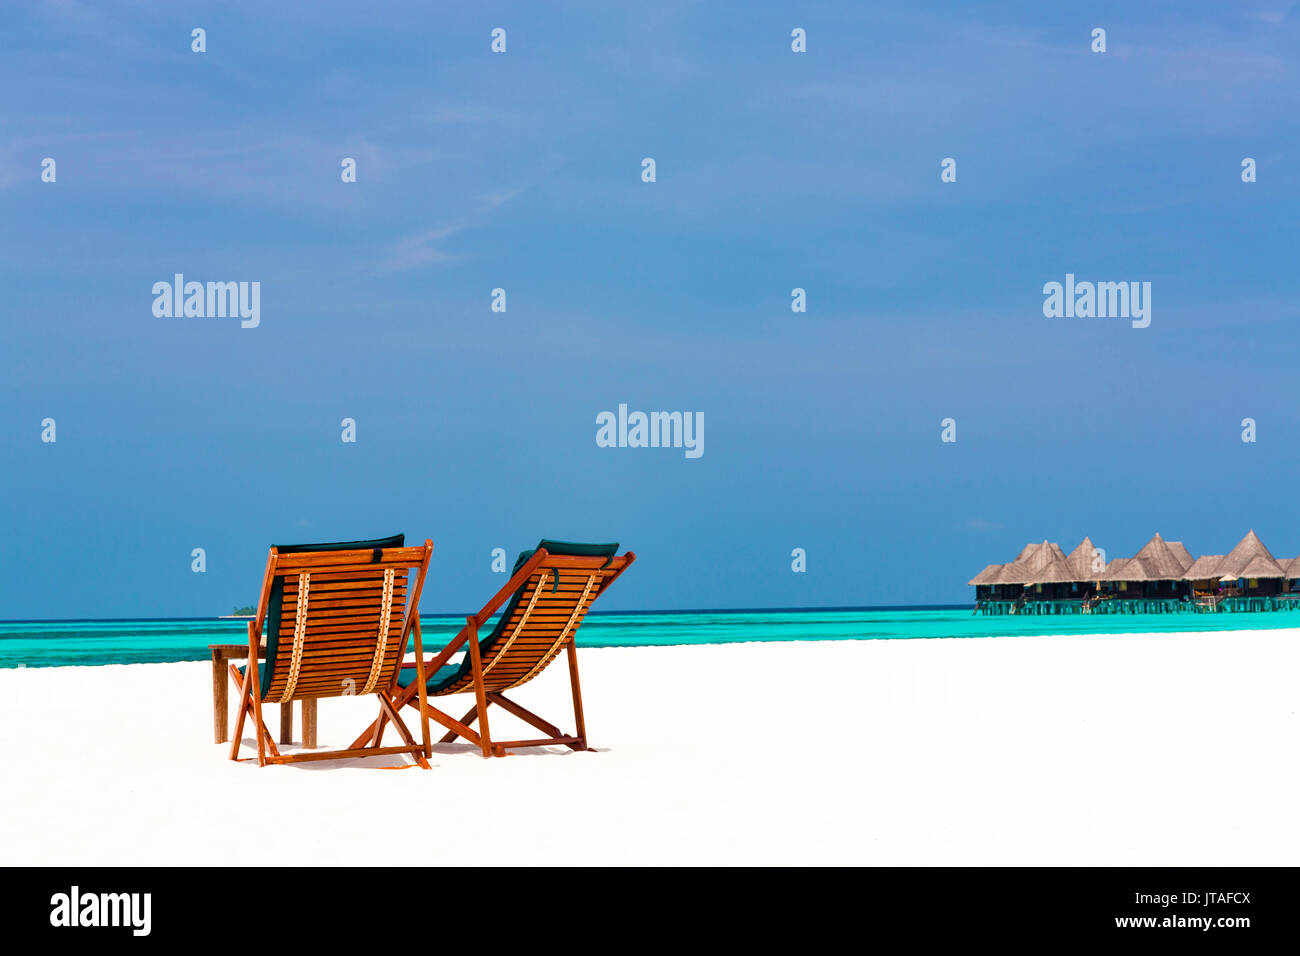 Wooden sun loungers on beach, Coco Palm, Dhuni Kolhu, Baa Atoll, Republic of Maldives, Indian Ocean, Asia - Stock Image